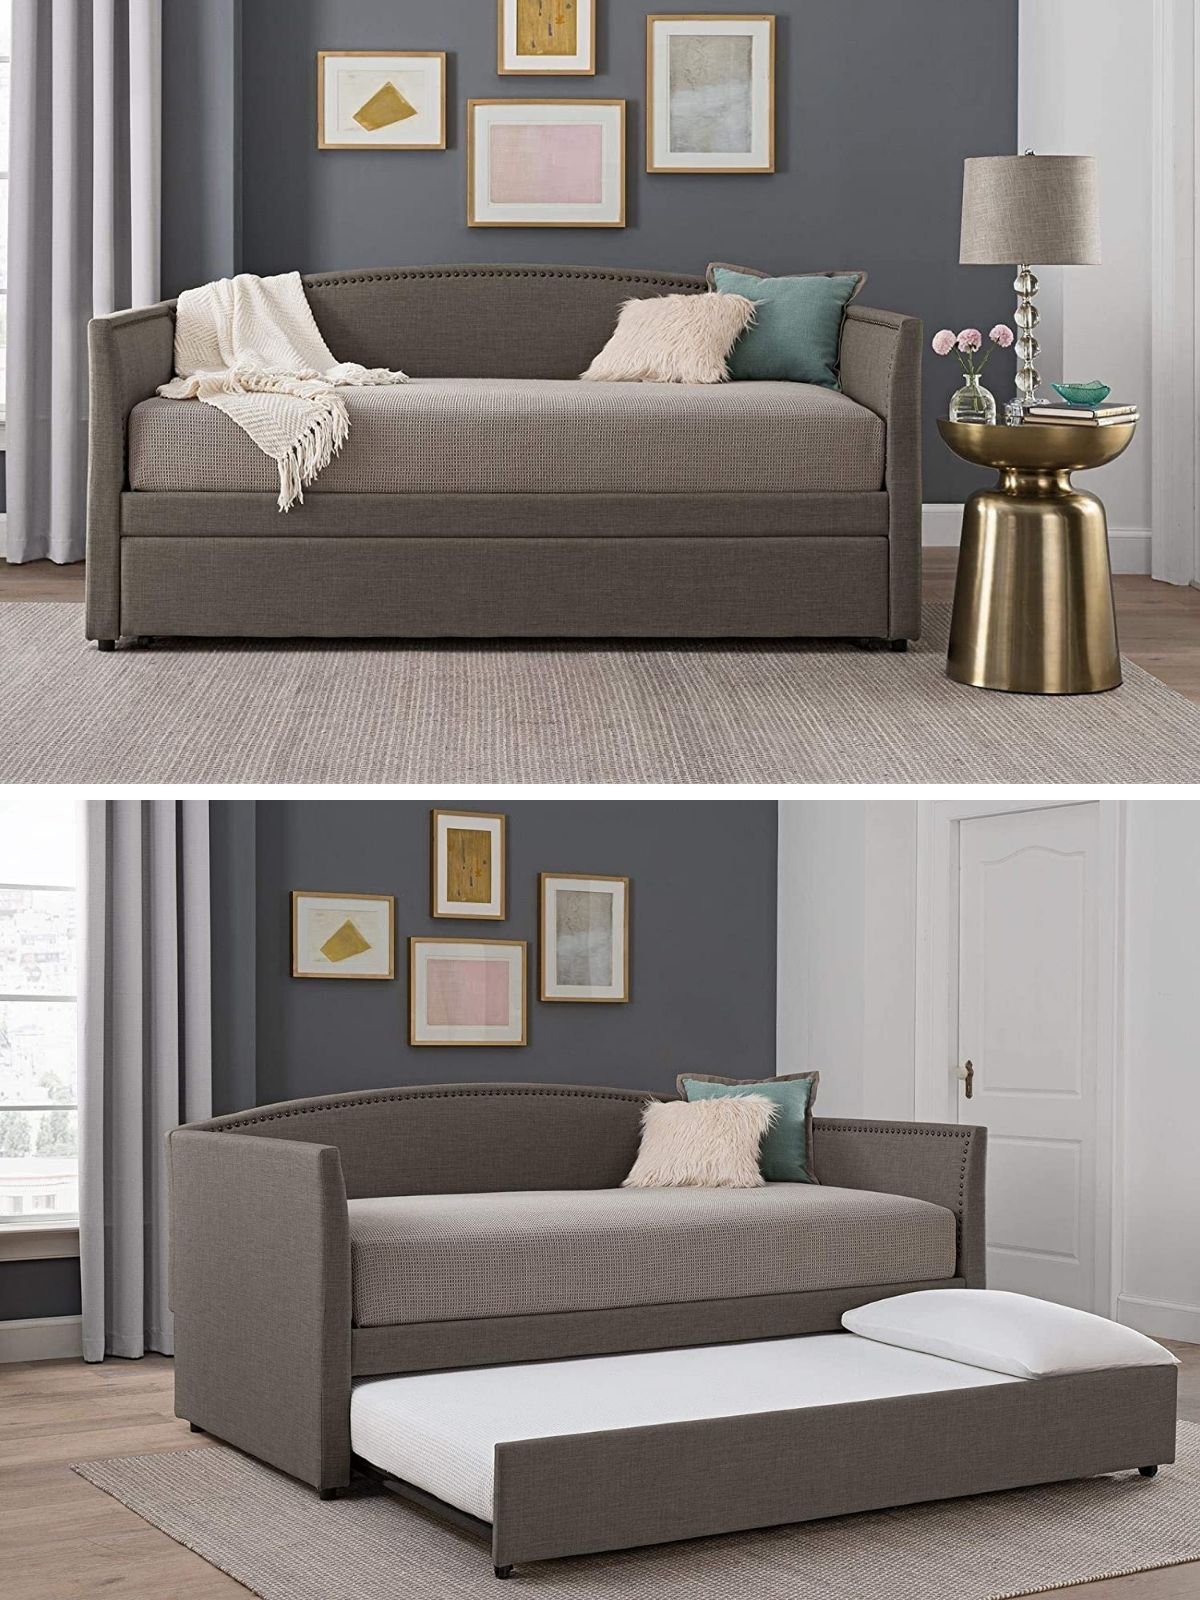 daybed grey - 20 delightful daybeds that easily convert into comfortable beds